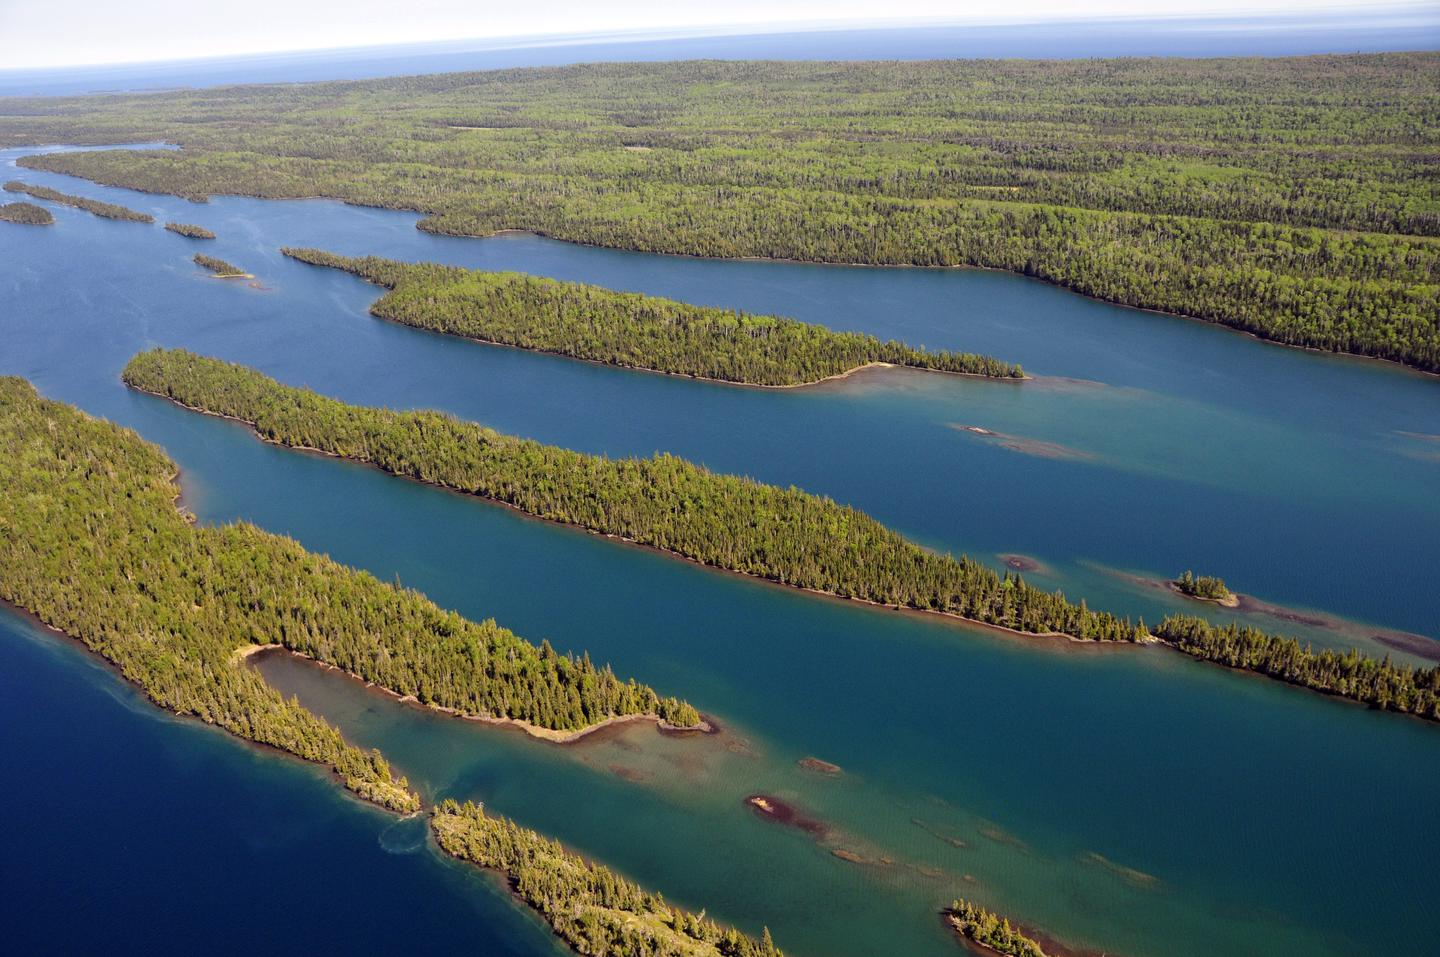 Aerial View of Belle HarborOne of the best ways to view Isle Royale's land and water is from the air.